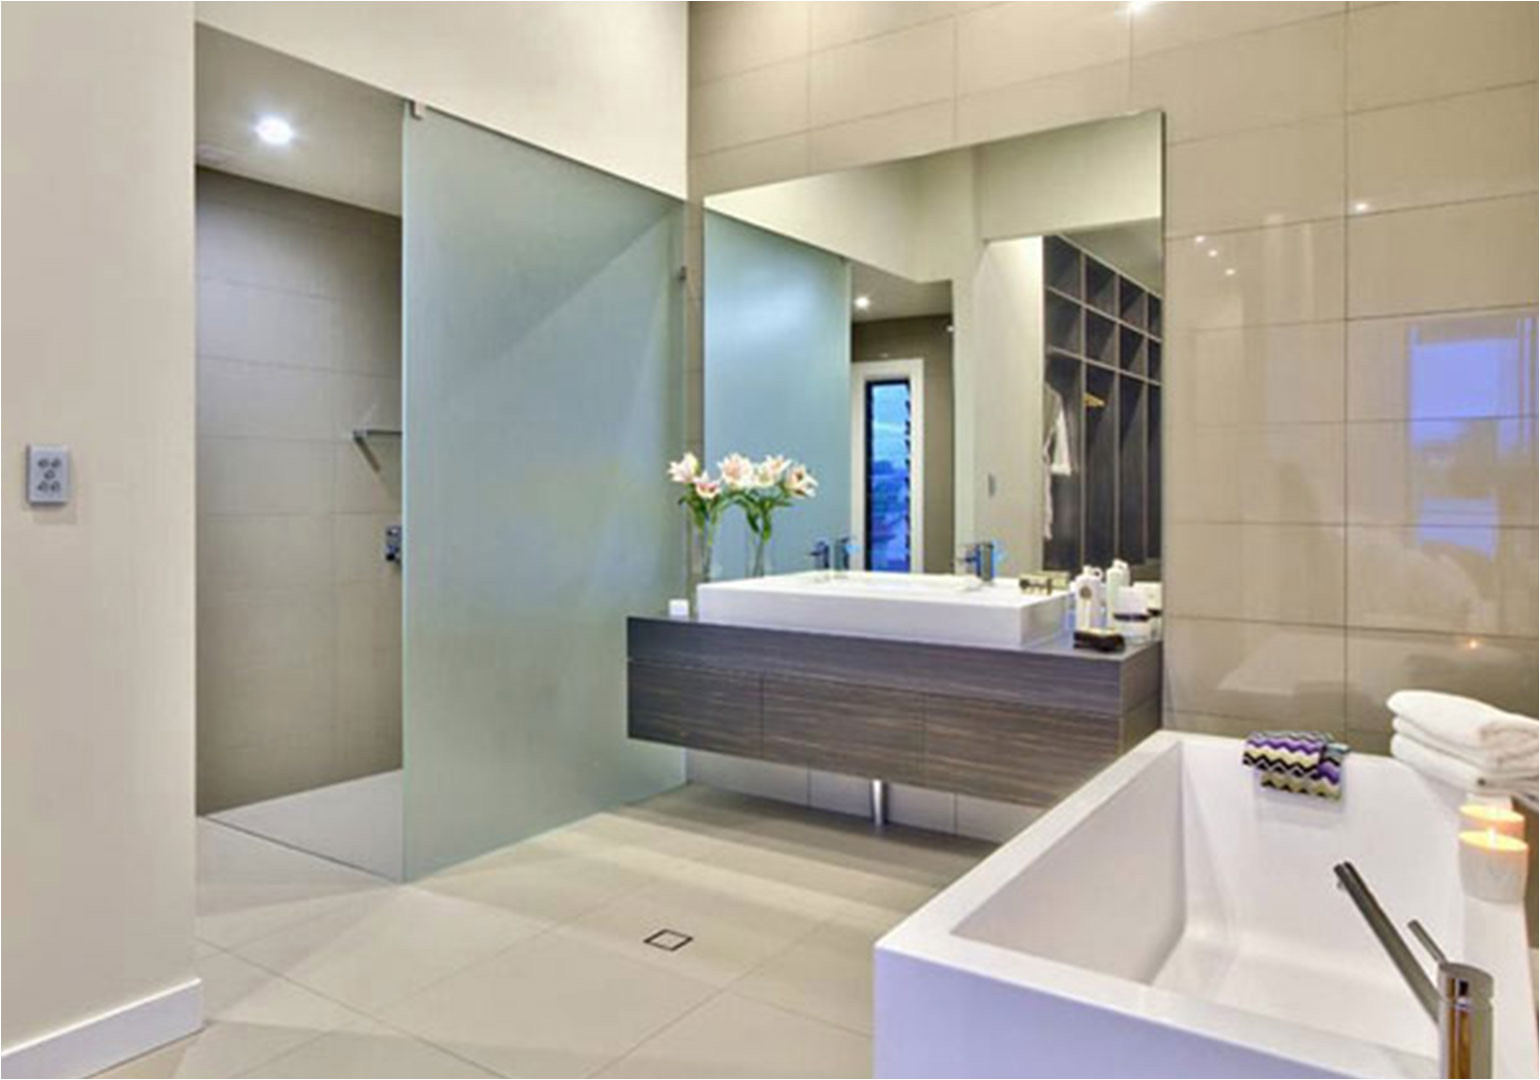 new home renovation ideas with modern interior